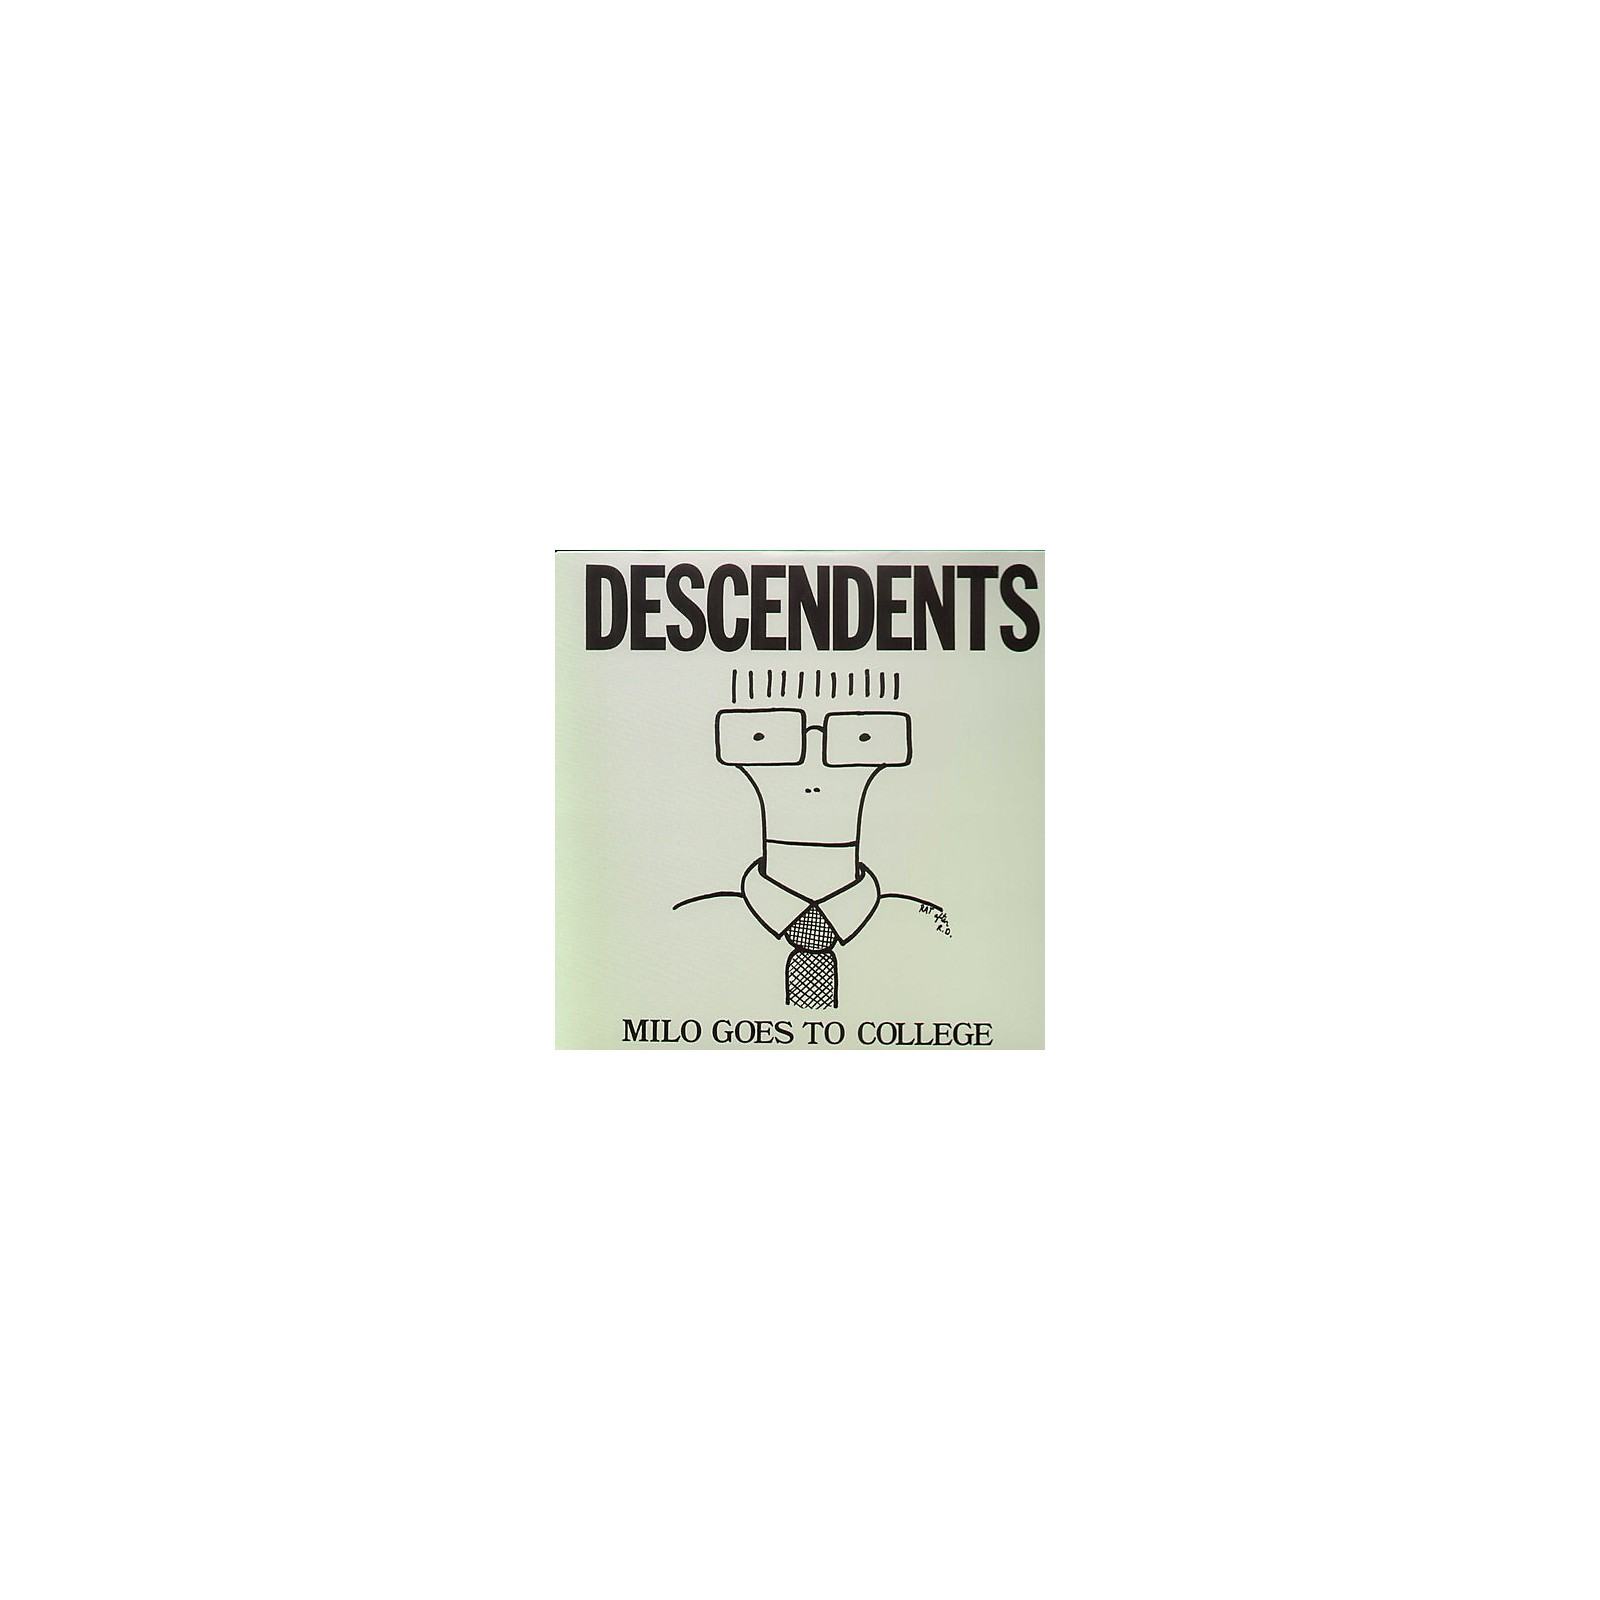 Alliance Descendents - Milo Goes to College